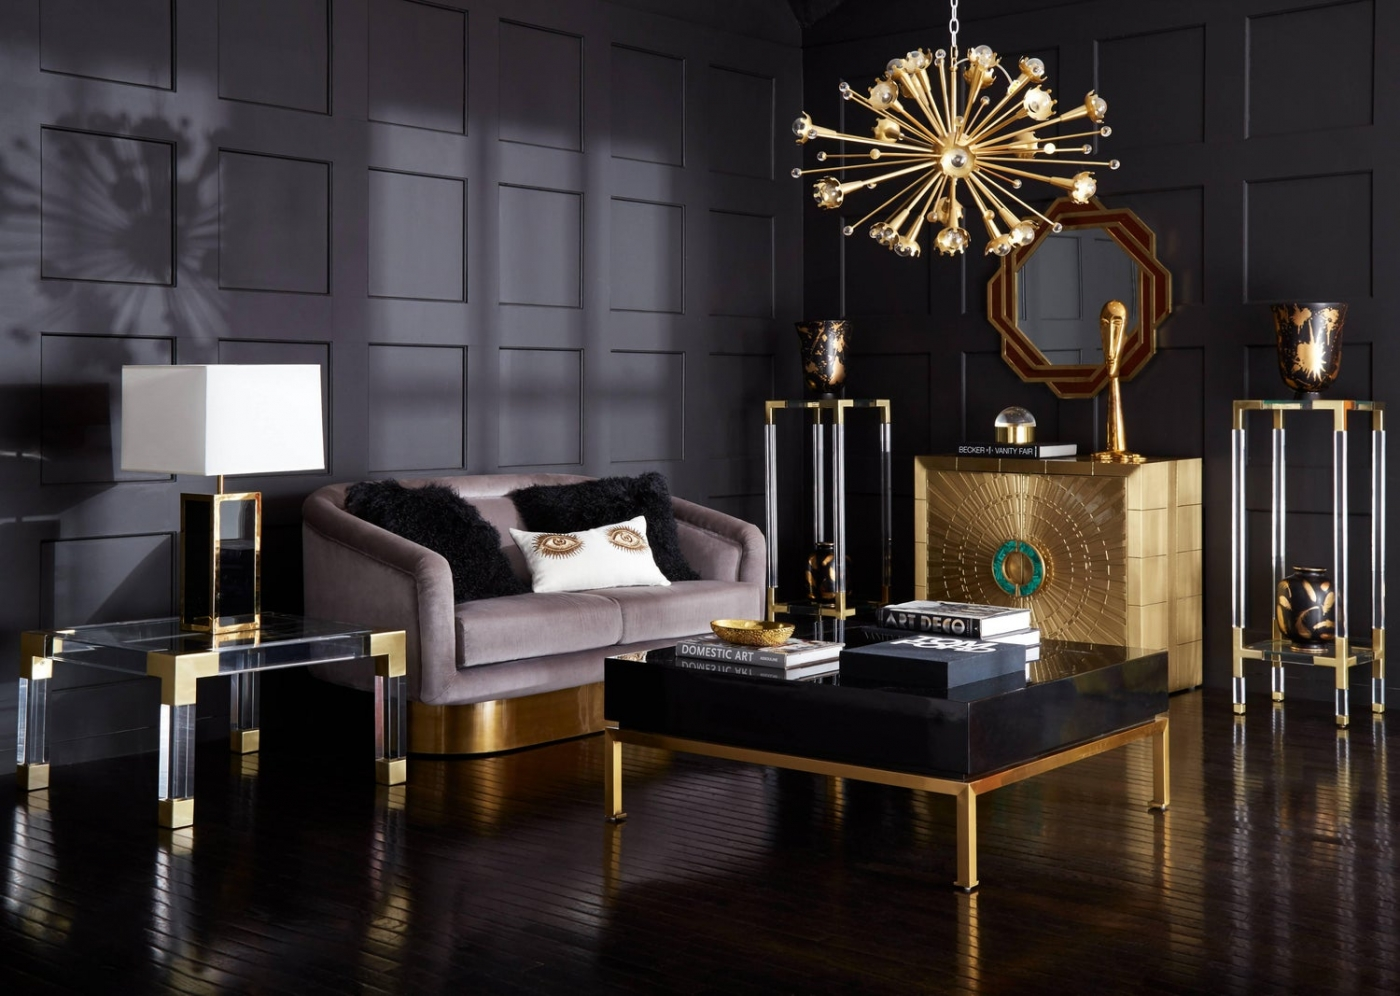 Imposing Furniture: Brass Modern Cabinets For A Luxury Design feature image 1 1400x996